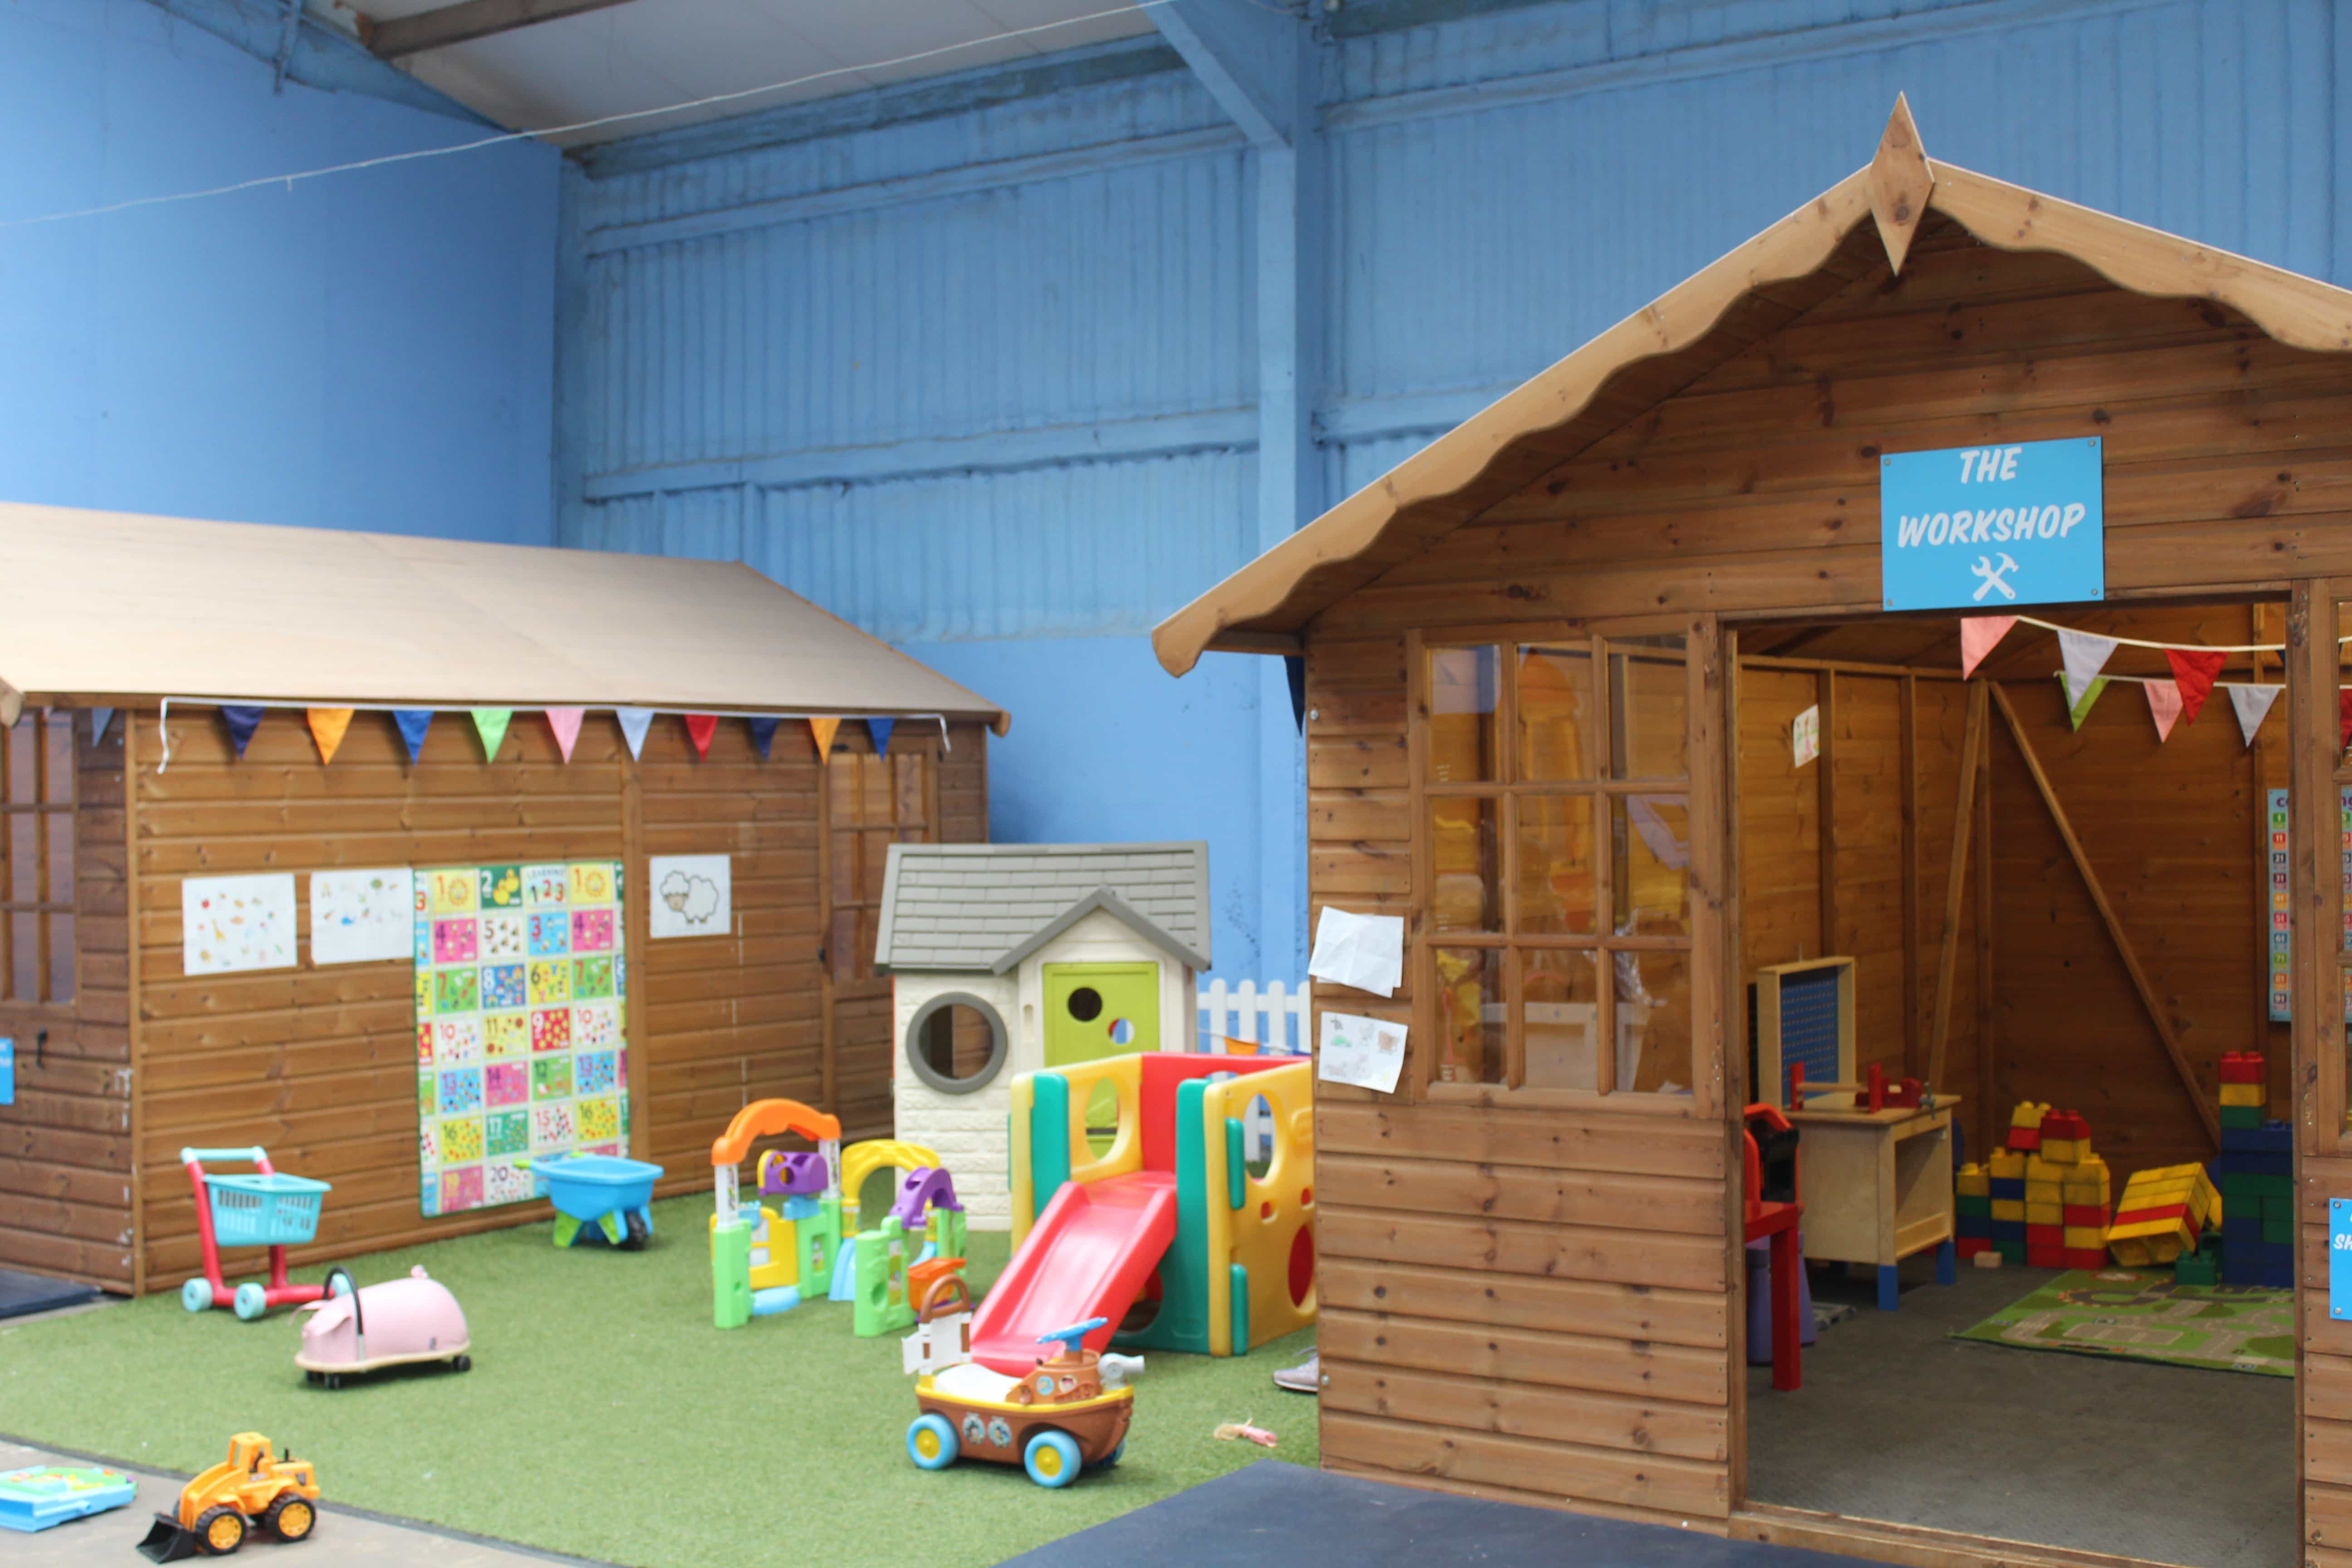 These sheds are full of toys mostly for imaginative play